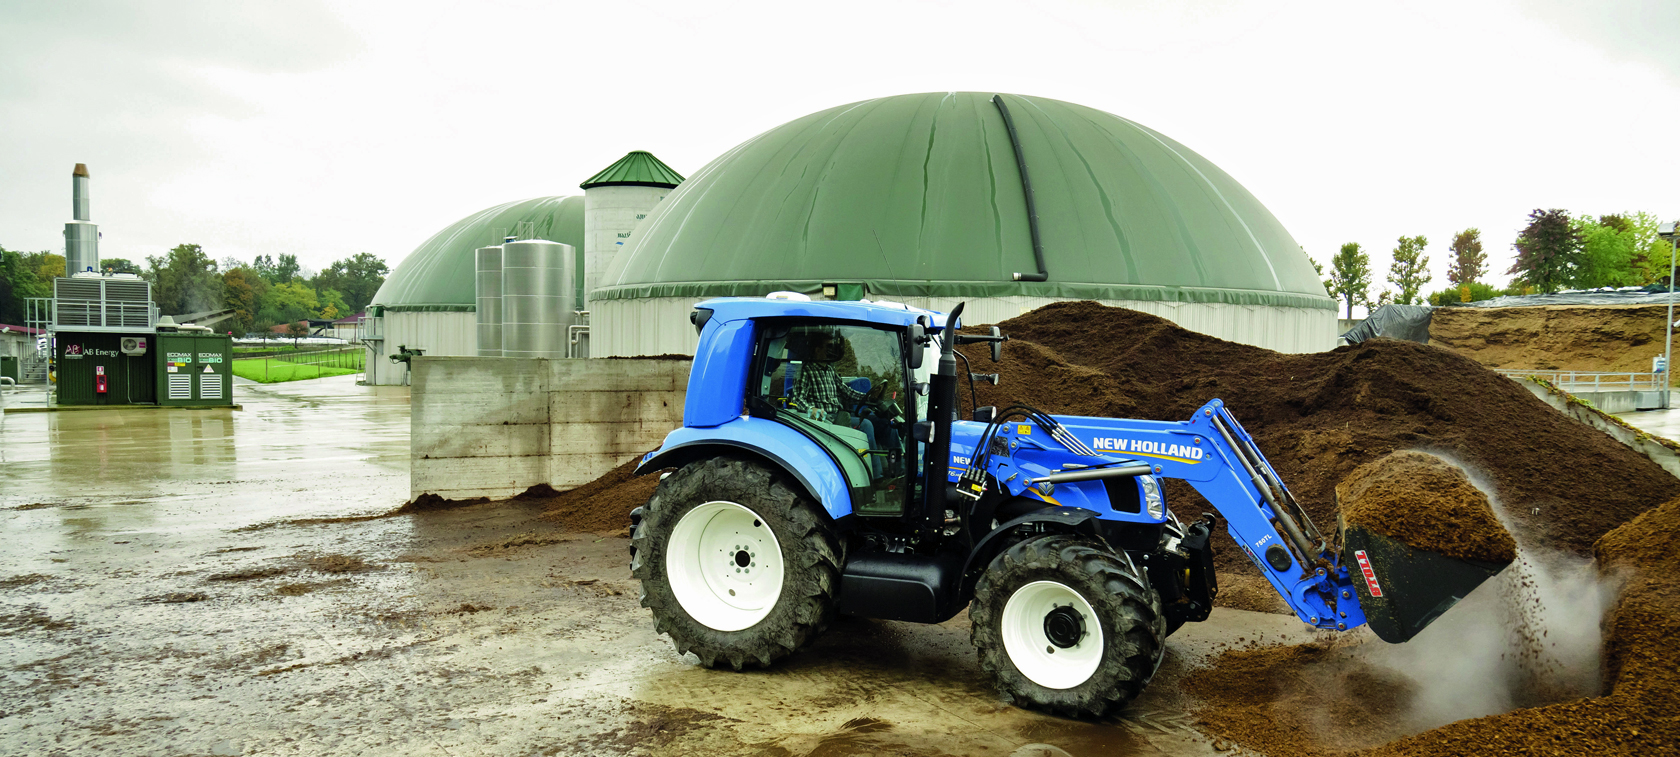 Methane-powered New Holland T6.140 tractor